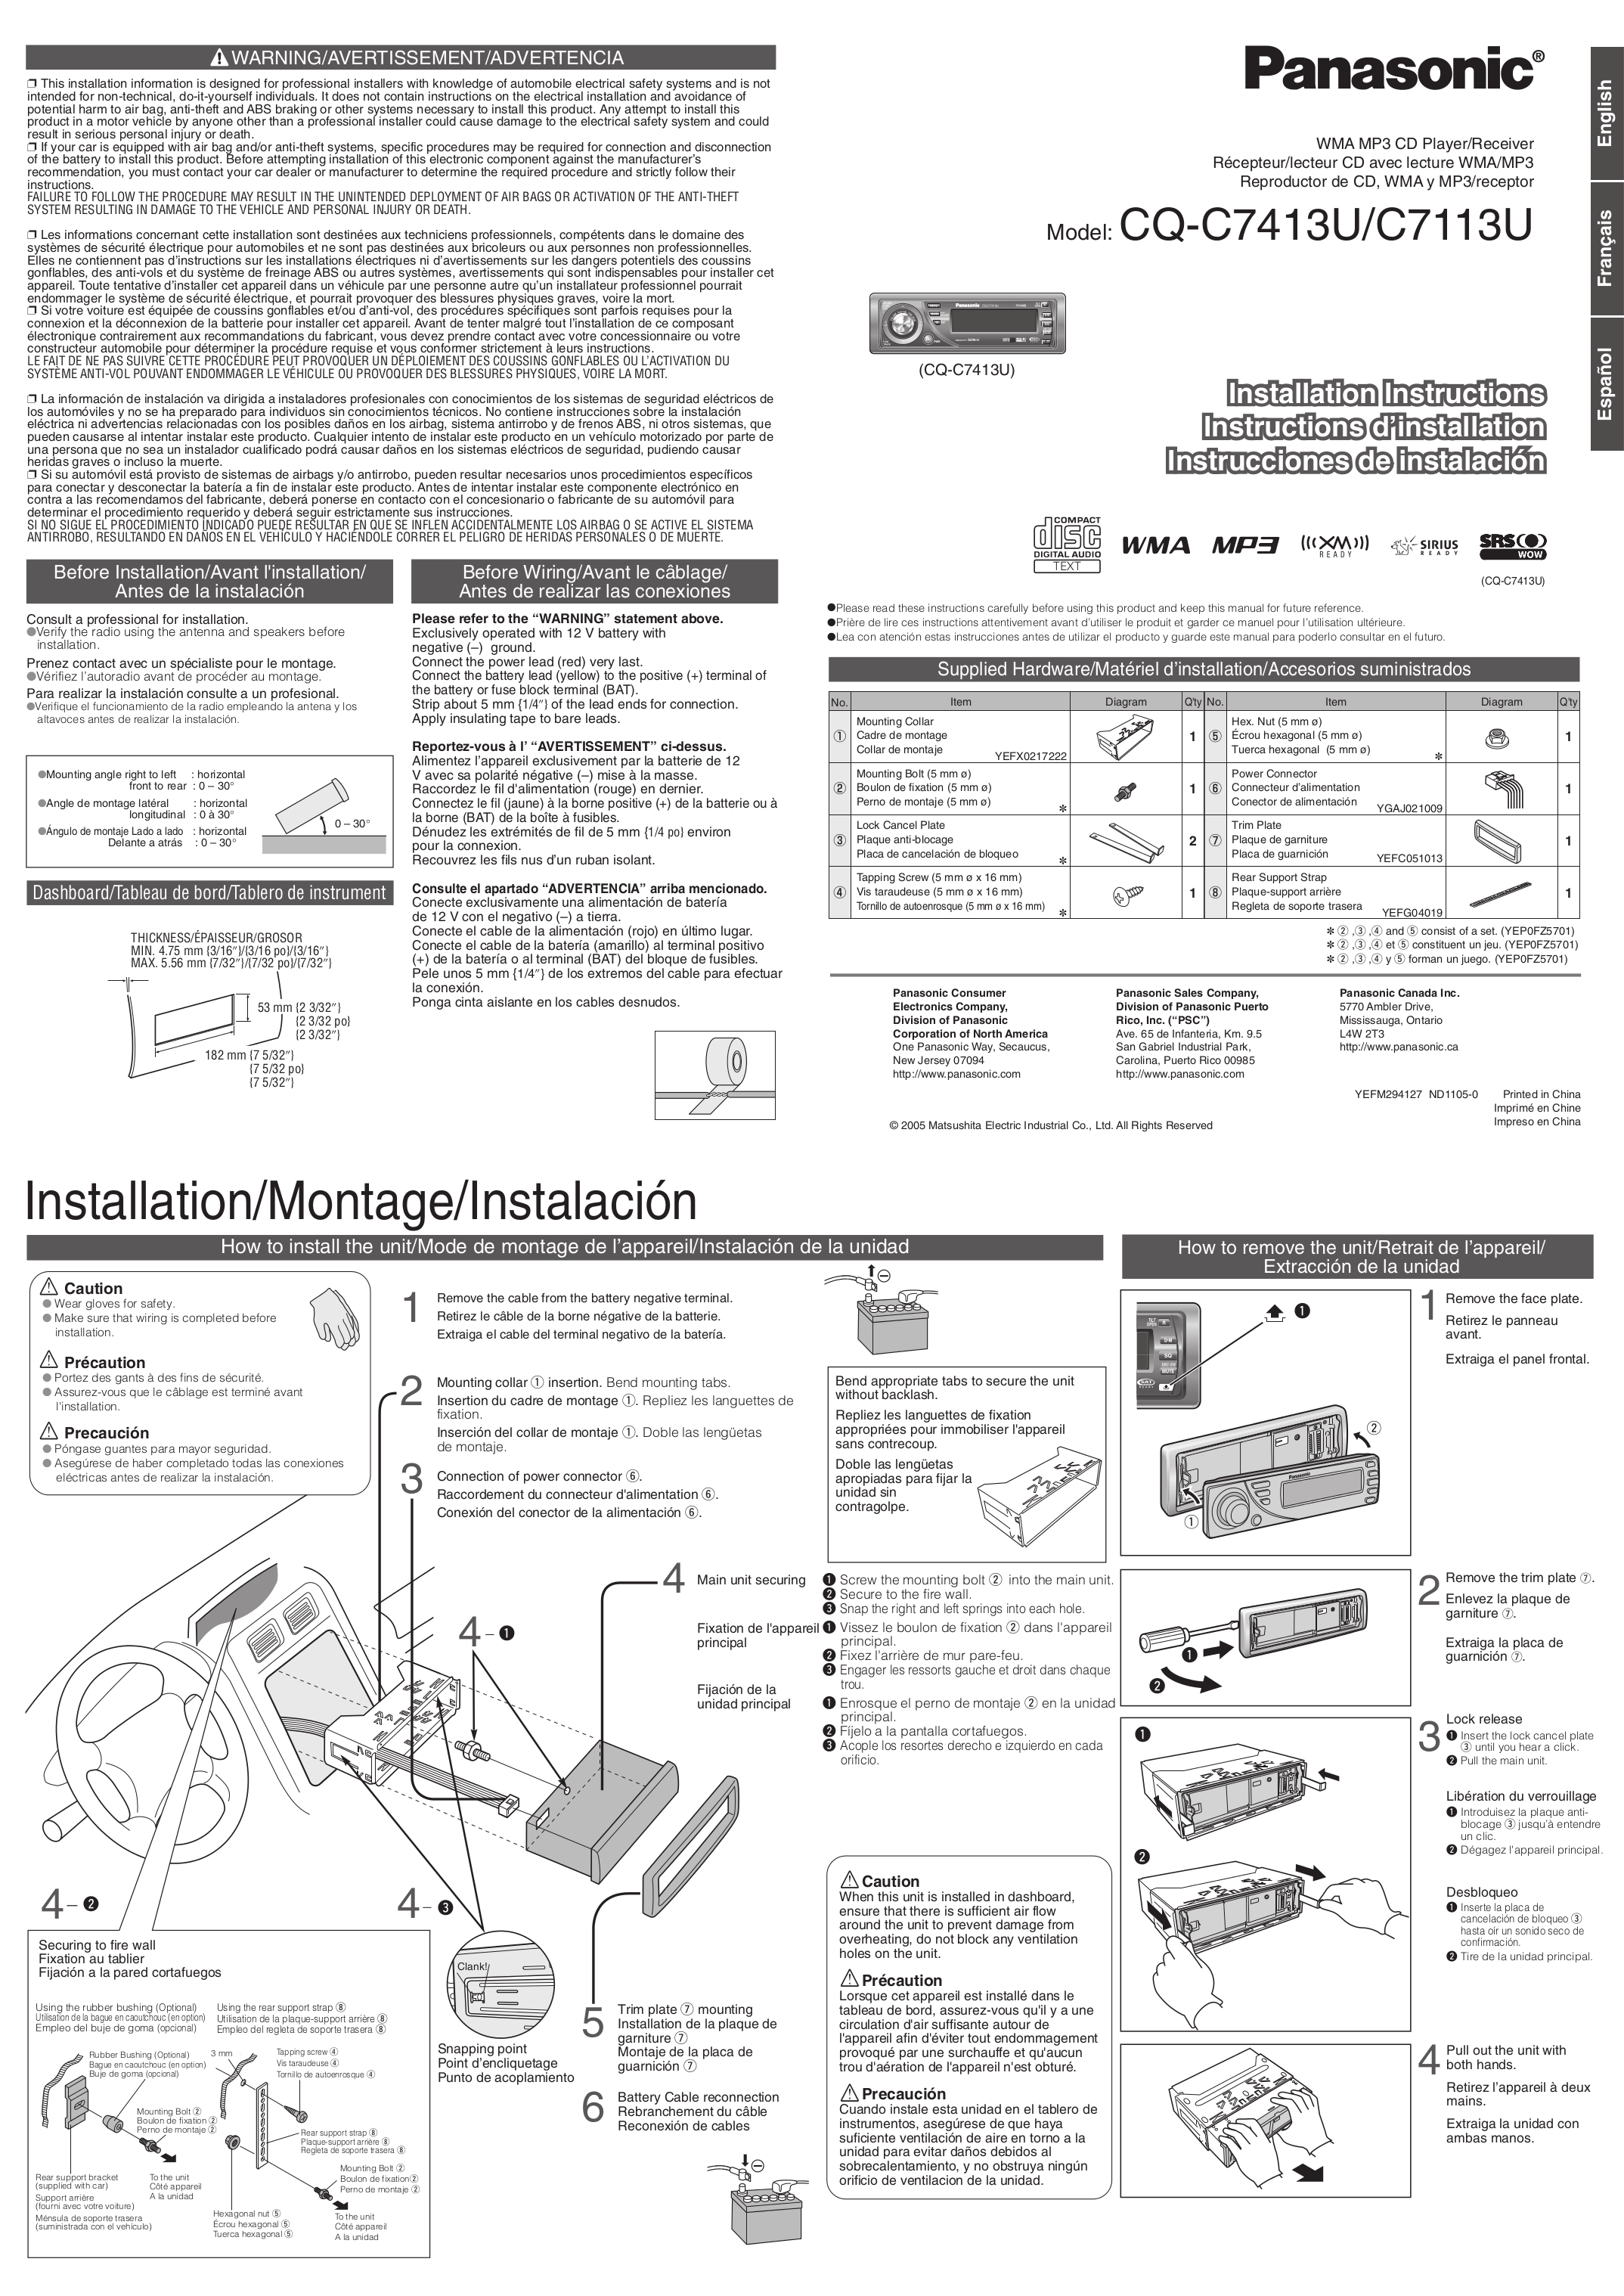 Panasonic R111u Wire Diagram Schematics Car Stereo Harness Manuals Wiring Source Cd Player Likewise